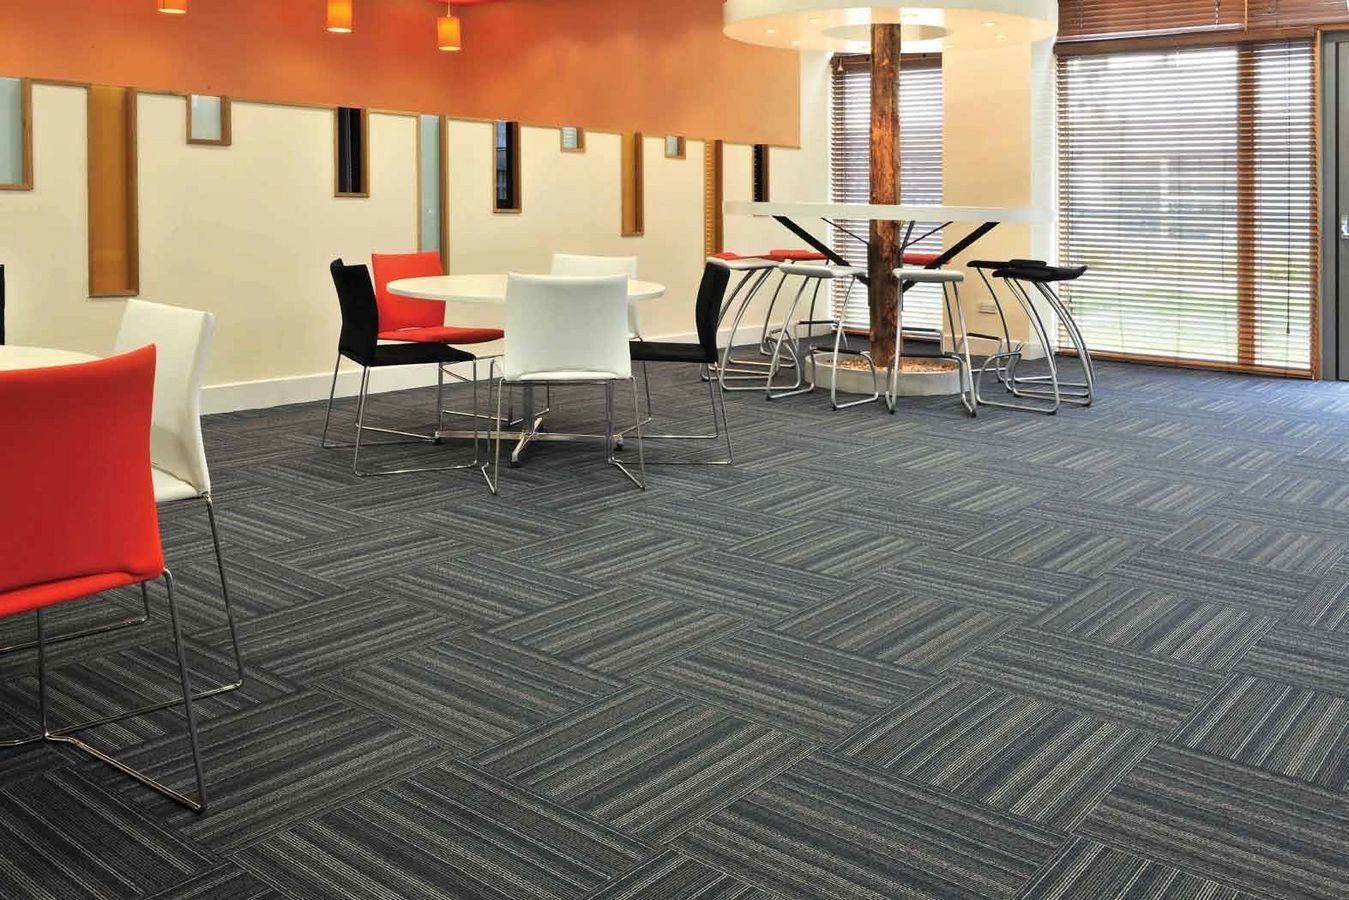 7 Tips To Maintain Your Office Carpet Tiles Office Carpet Office